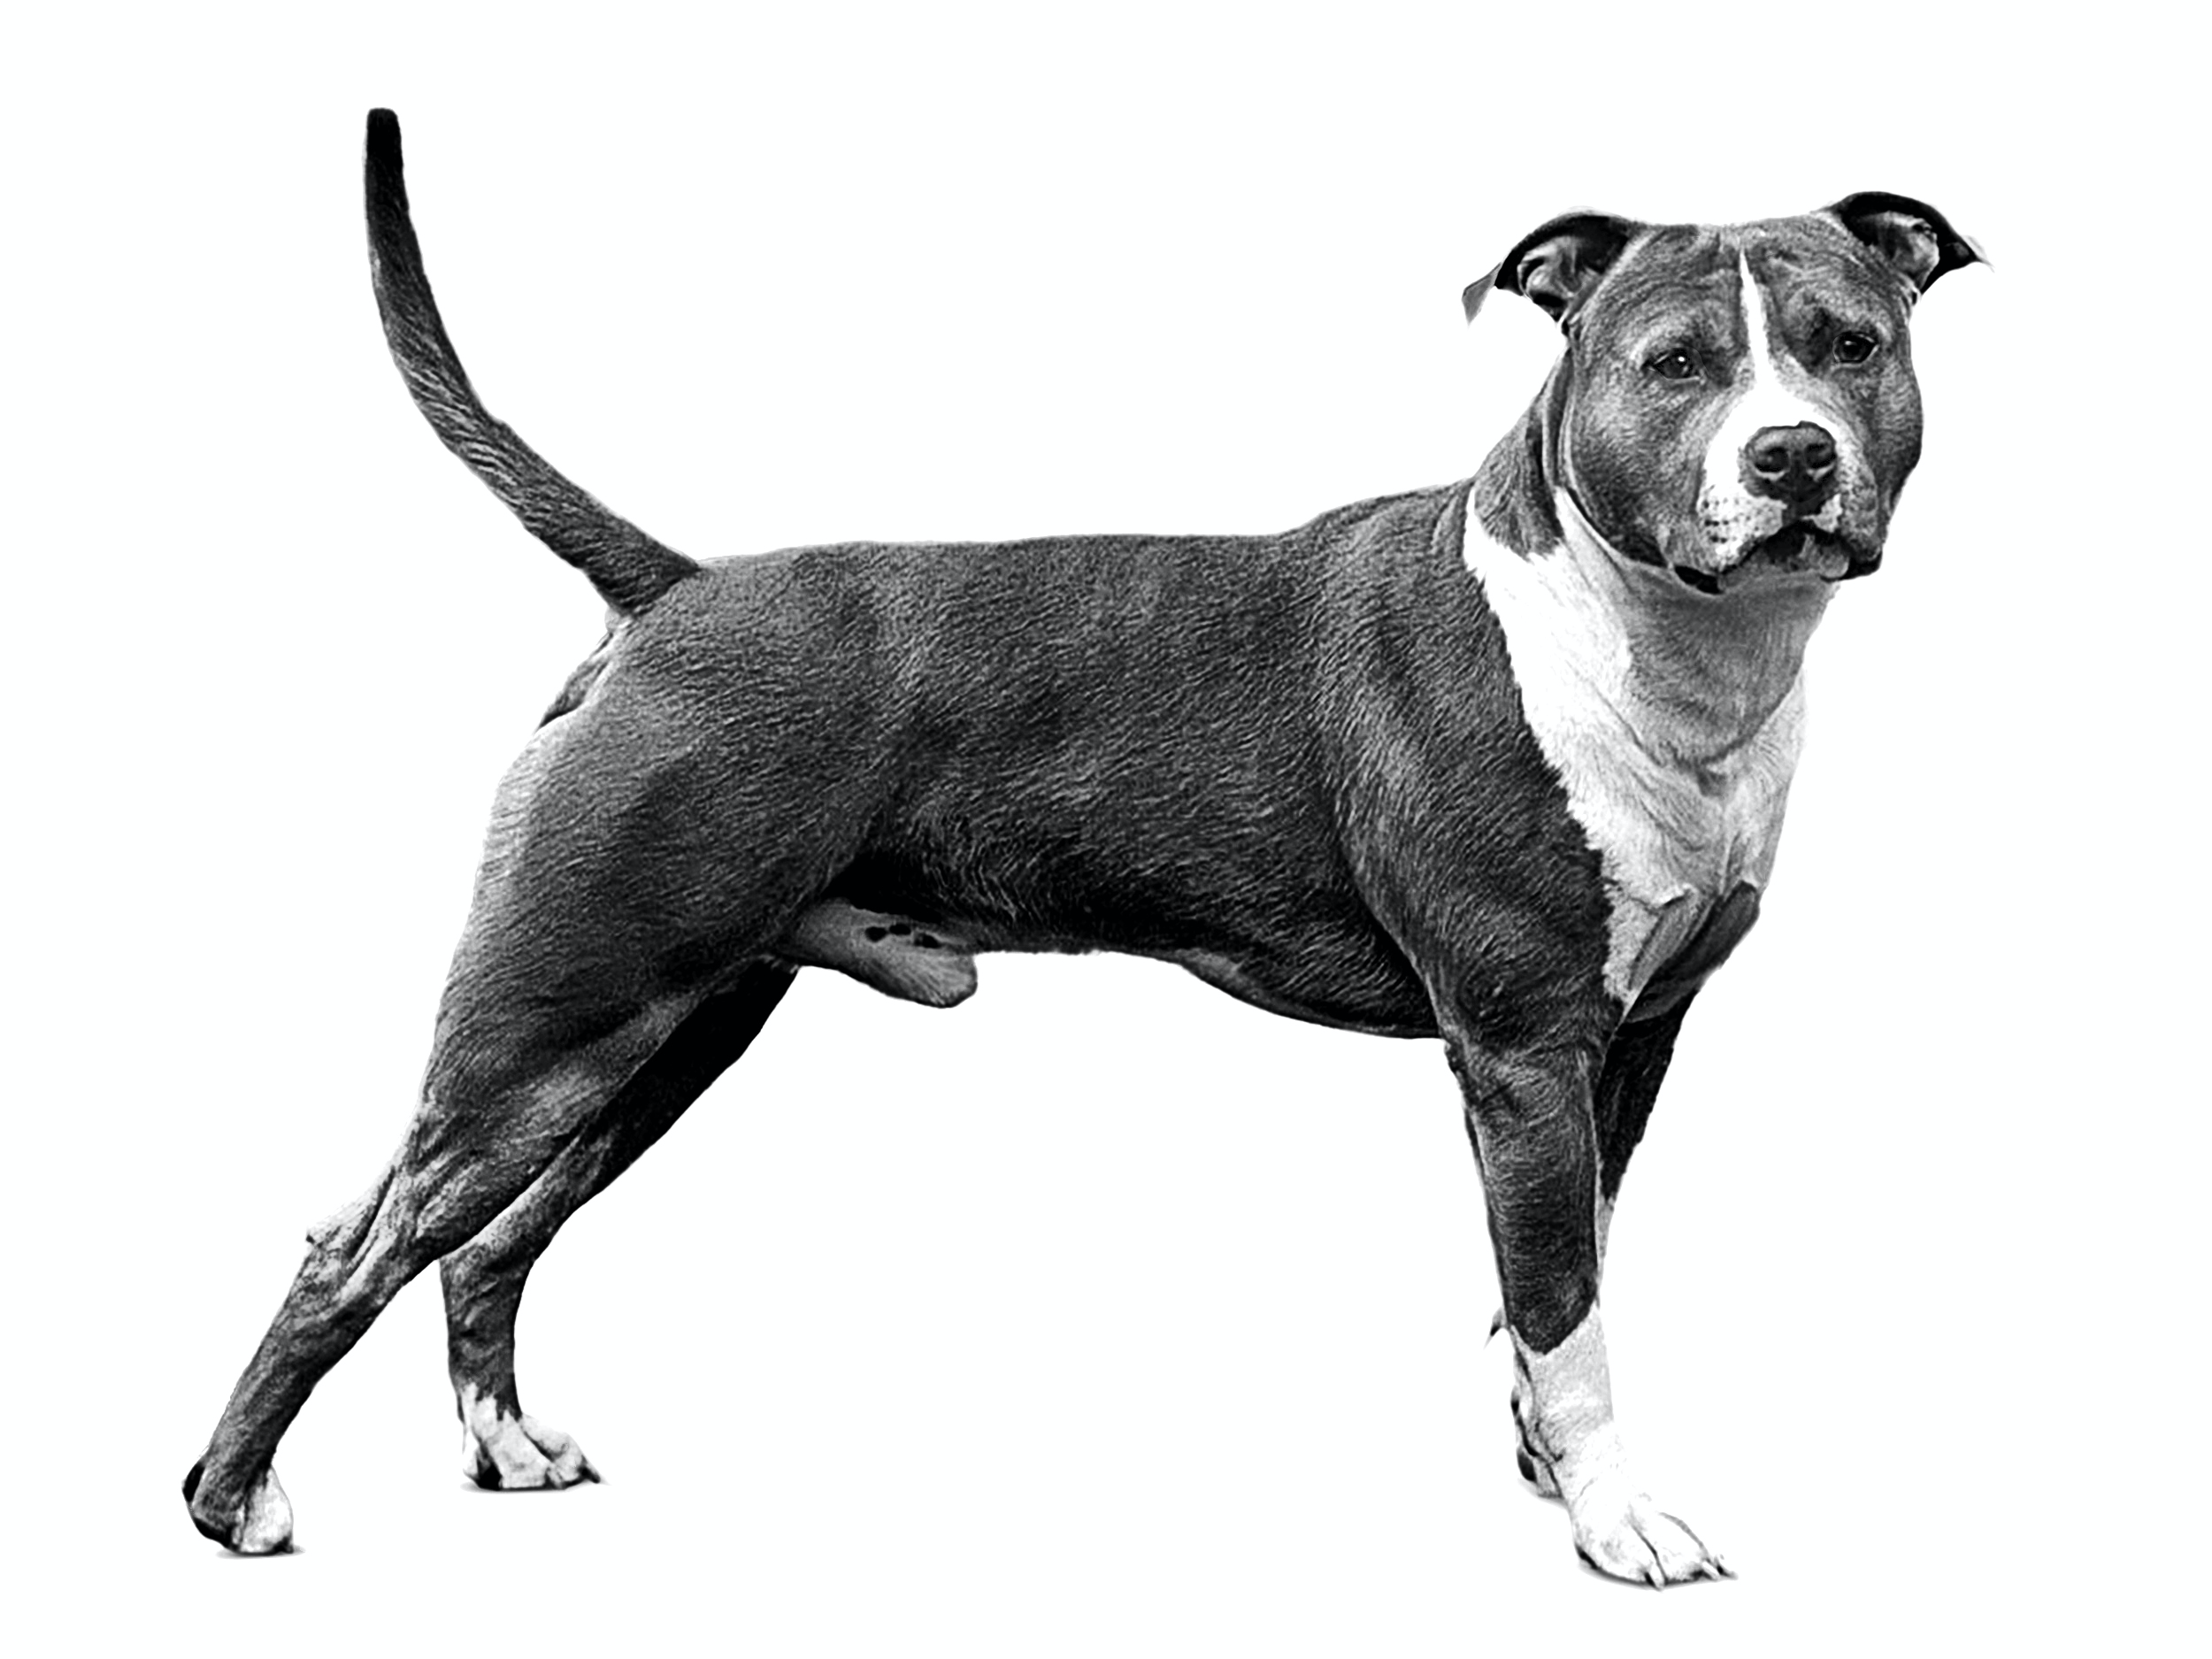 American Staffordshire Terrier - Royal Canin